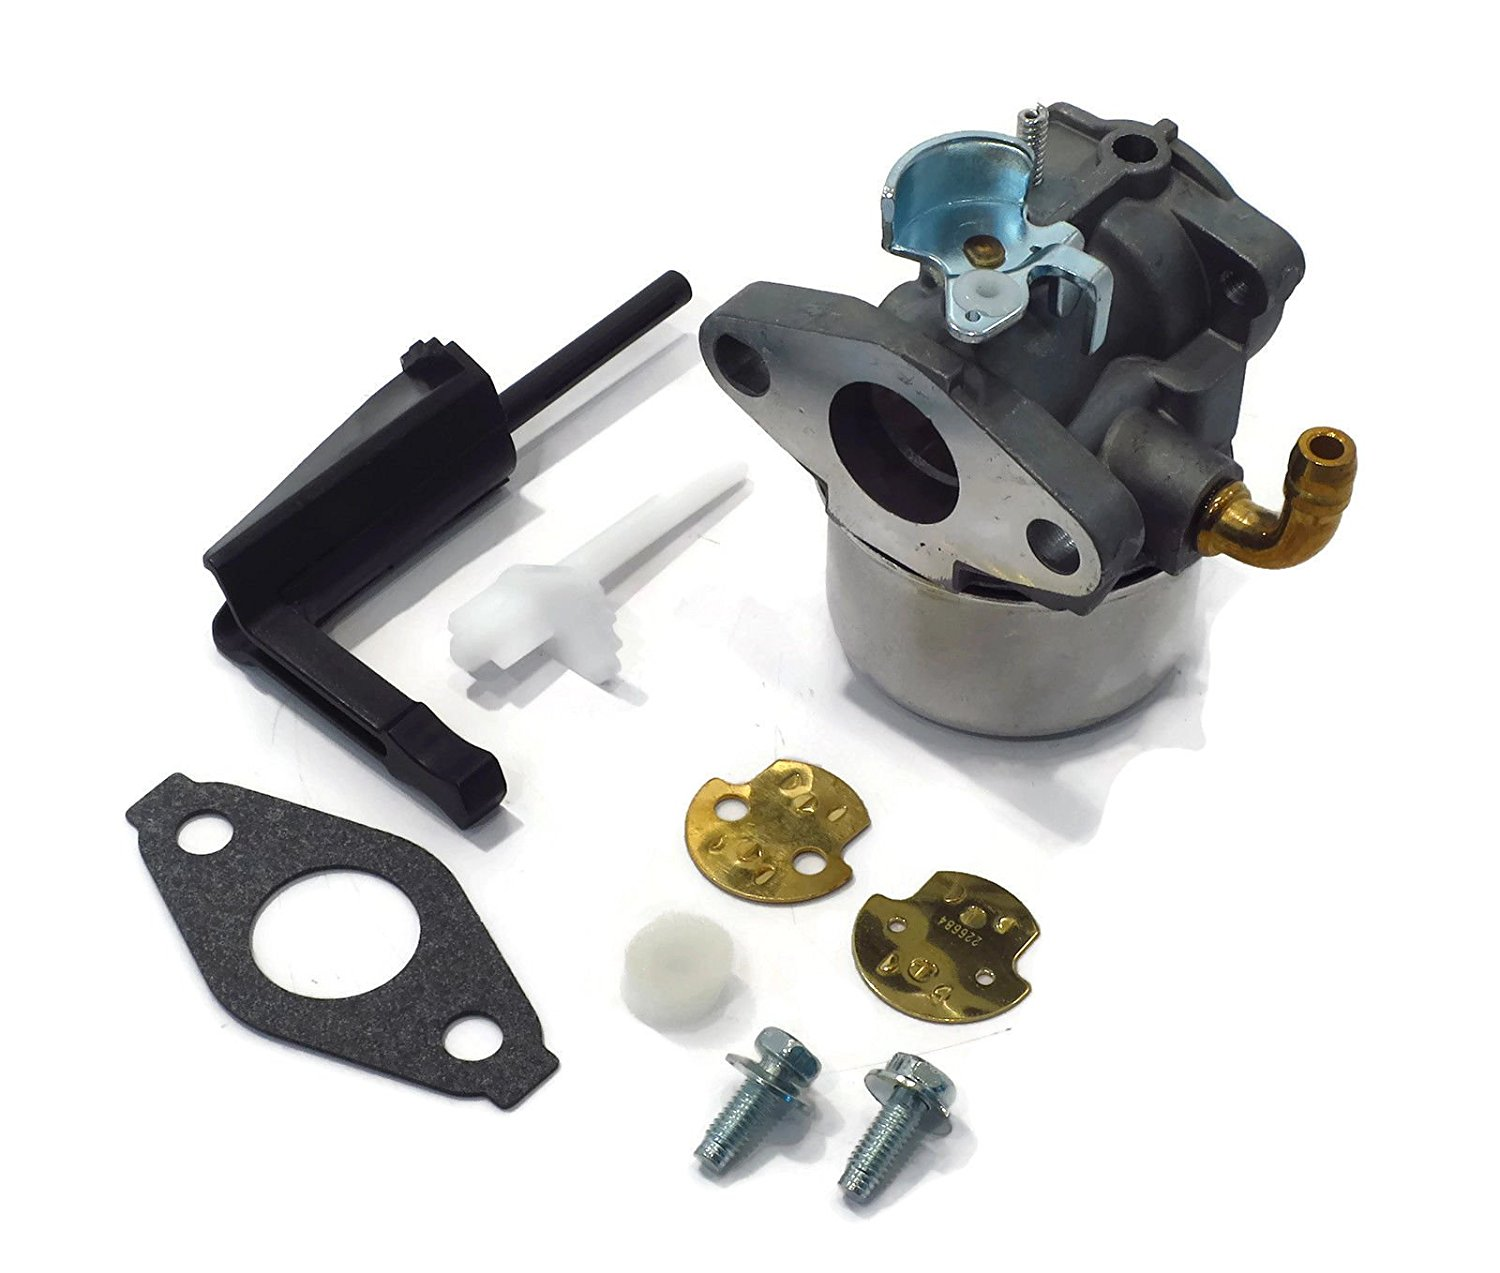 CARBURETOR Carb 798653 697354 790290 791077 698860 for Briggs & Stratton Engine ,,#id(theropshop; TRYK33272303245998